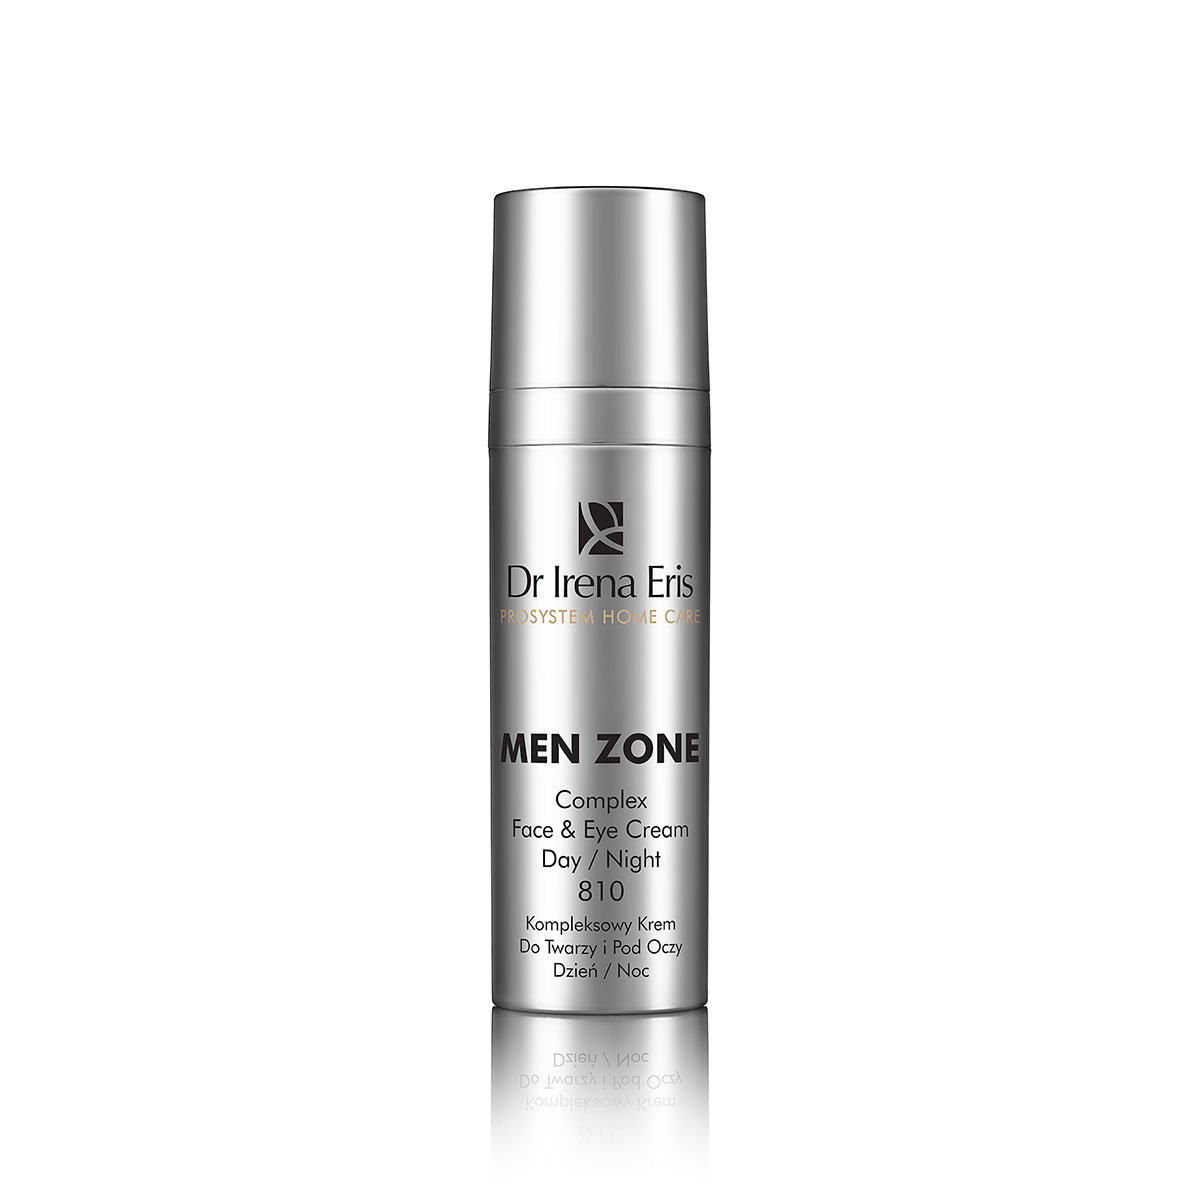 MEN ZONE Complex Face & Eye Cream 810